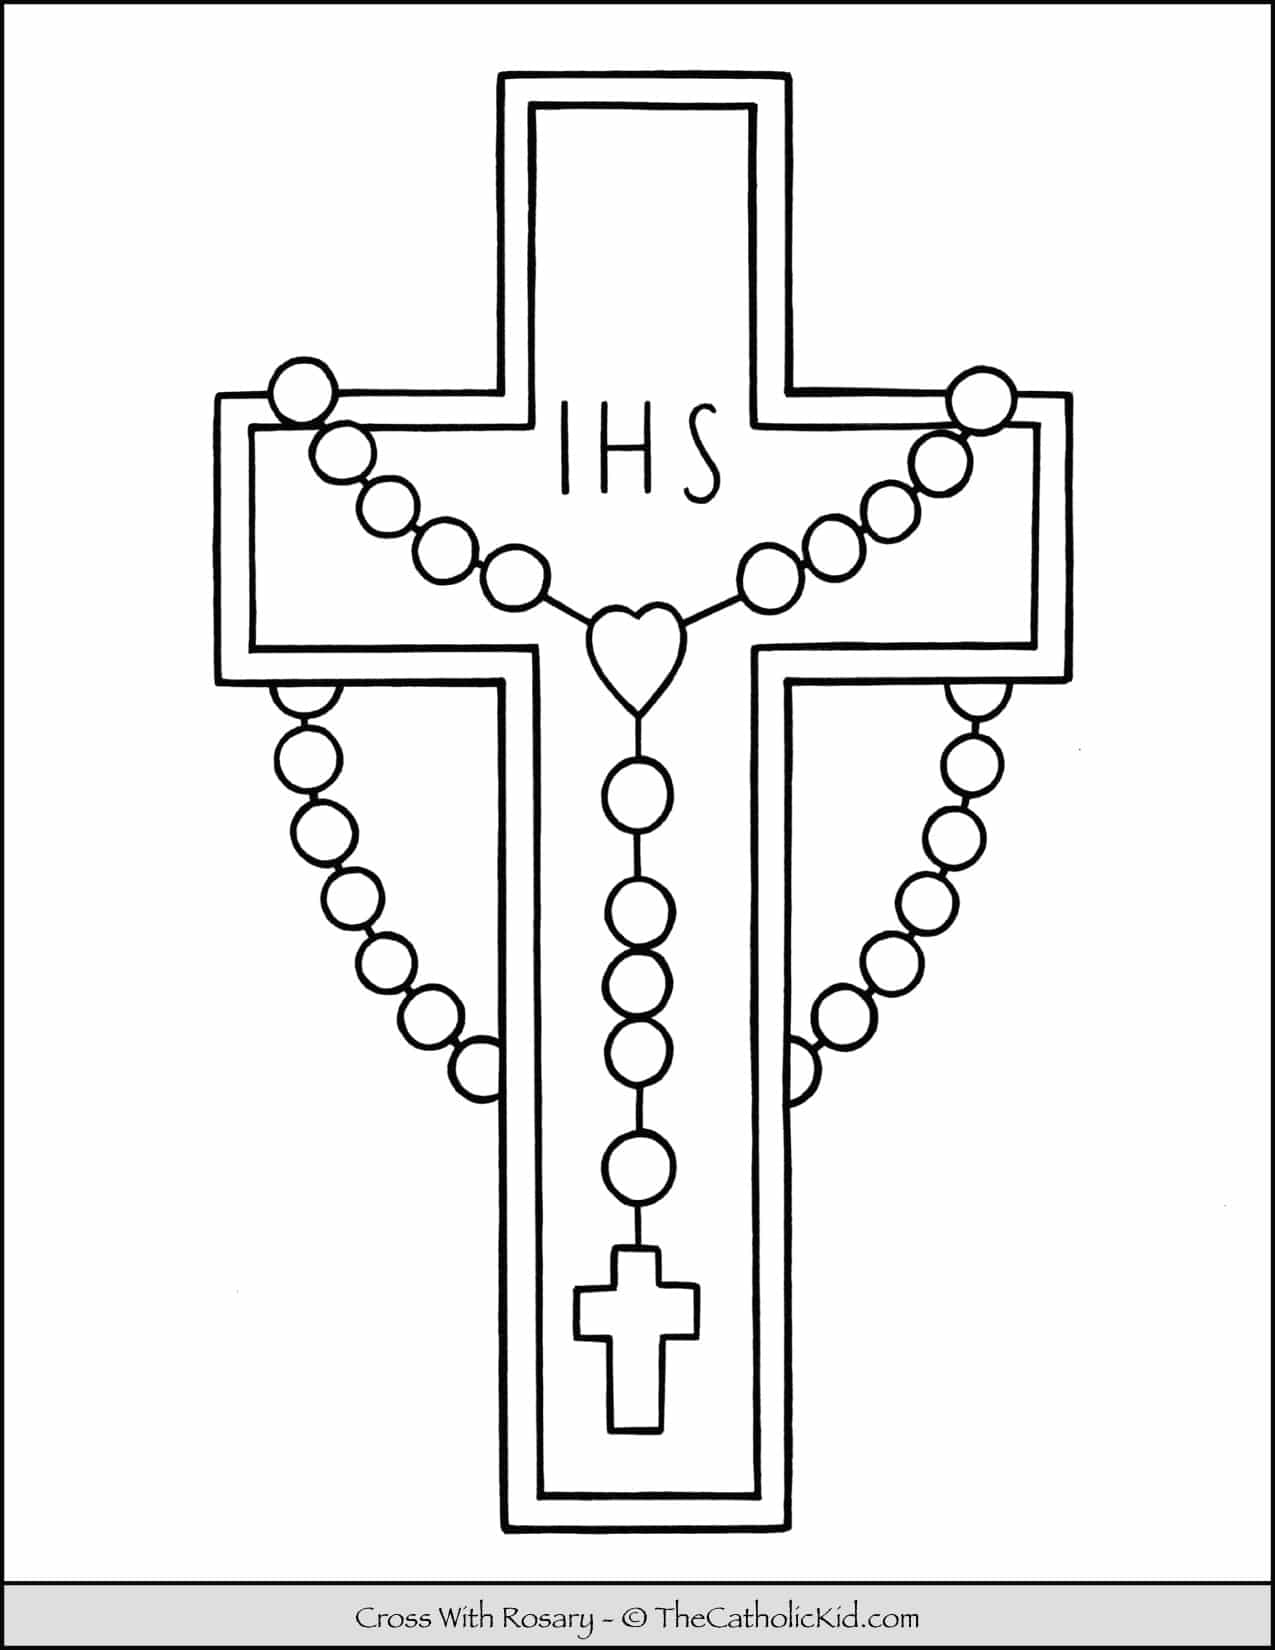 Cross With Rosary Coloring Page Thecatholickid Com